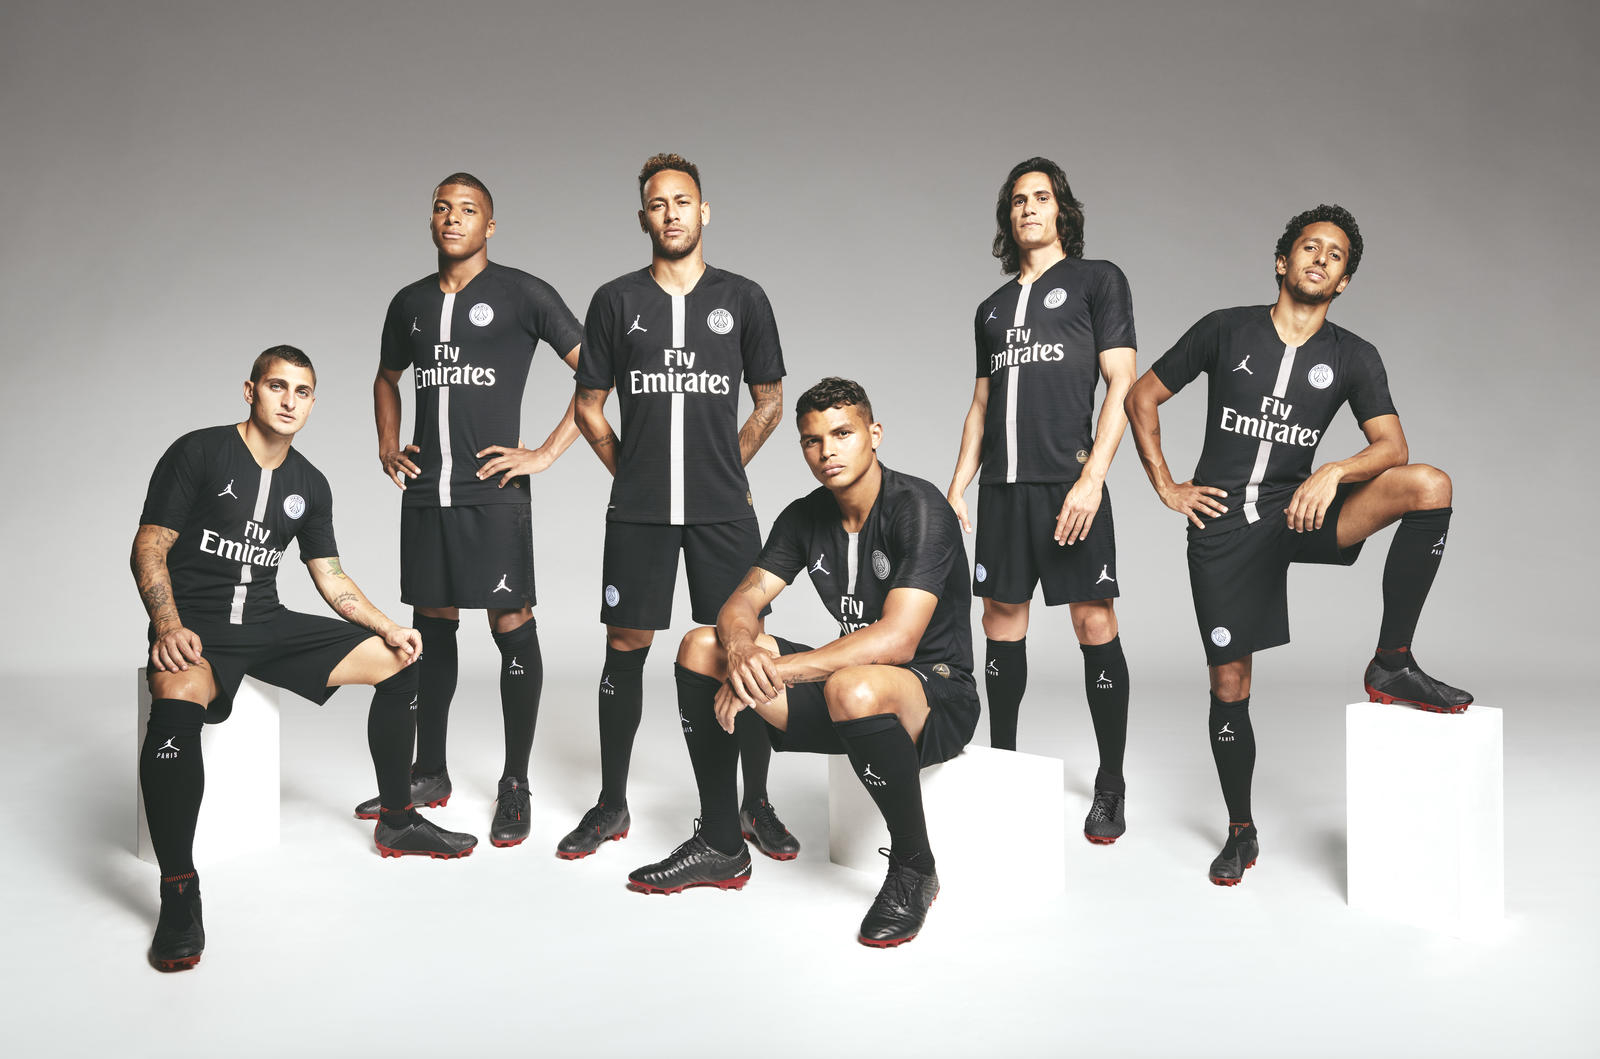 jordan-psg-paris-st-germain-clothing-apparel-1